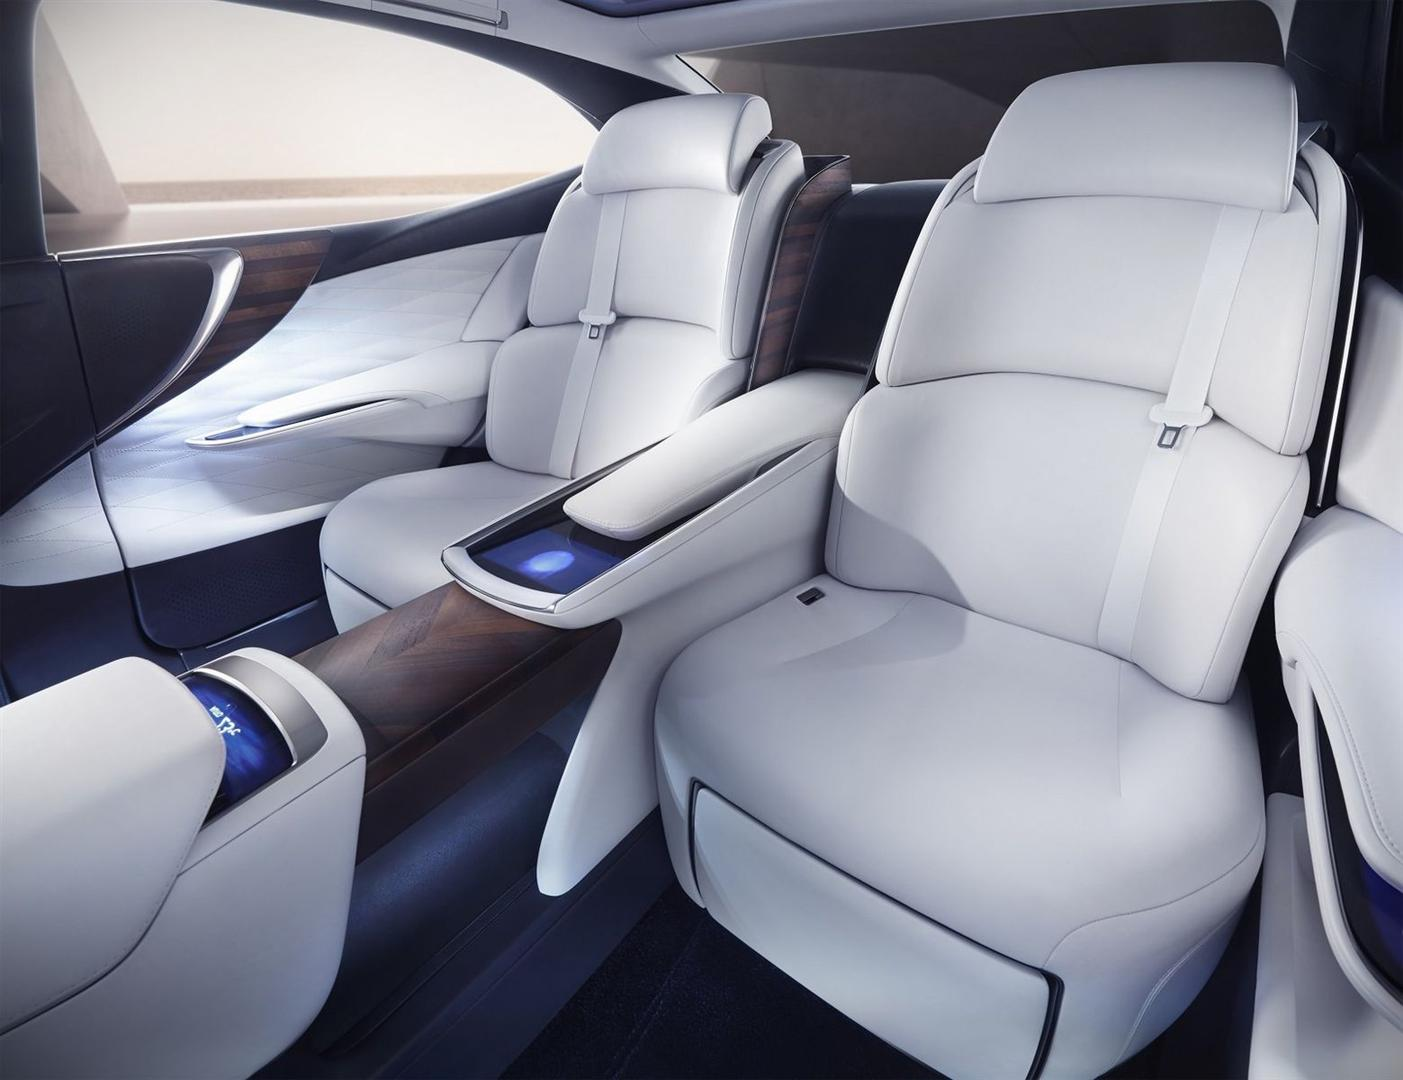 2019 Lexus GS 350 Seating Color